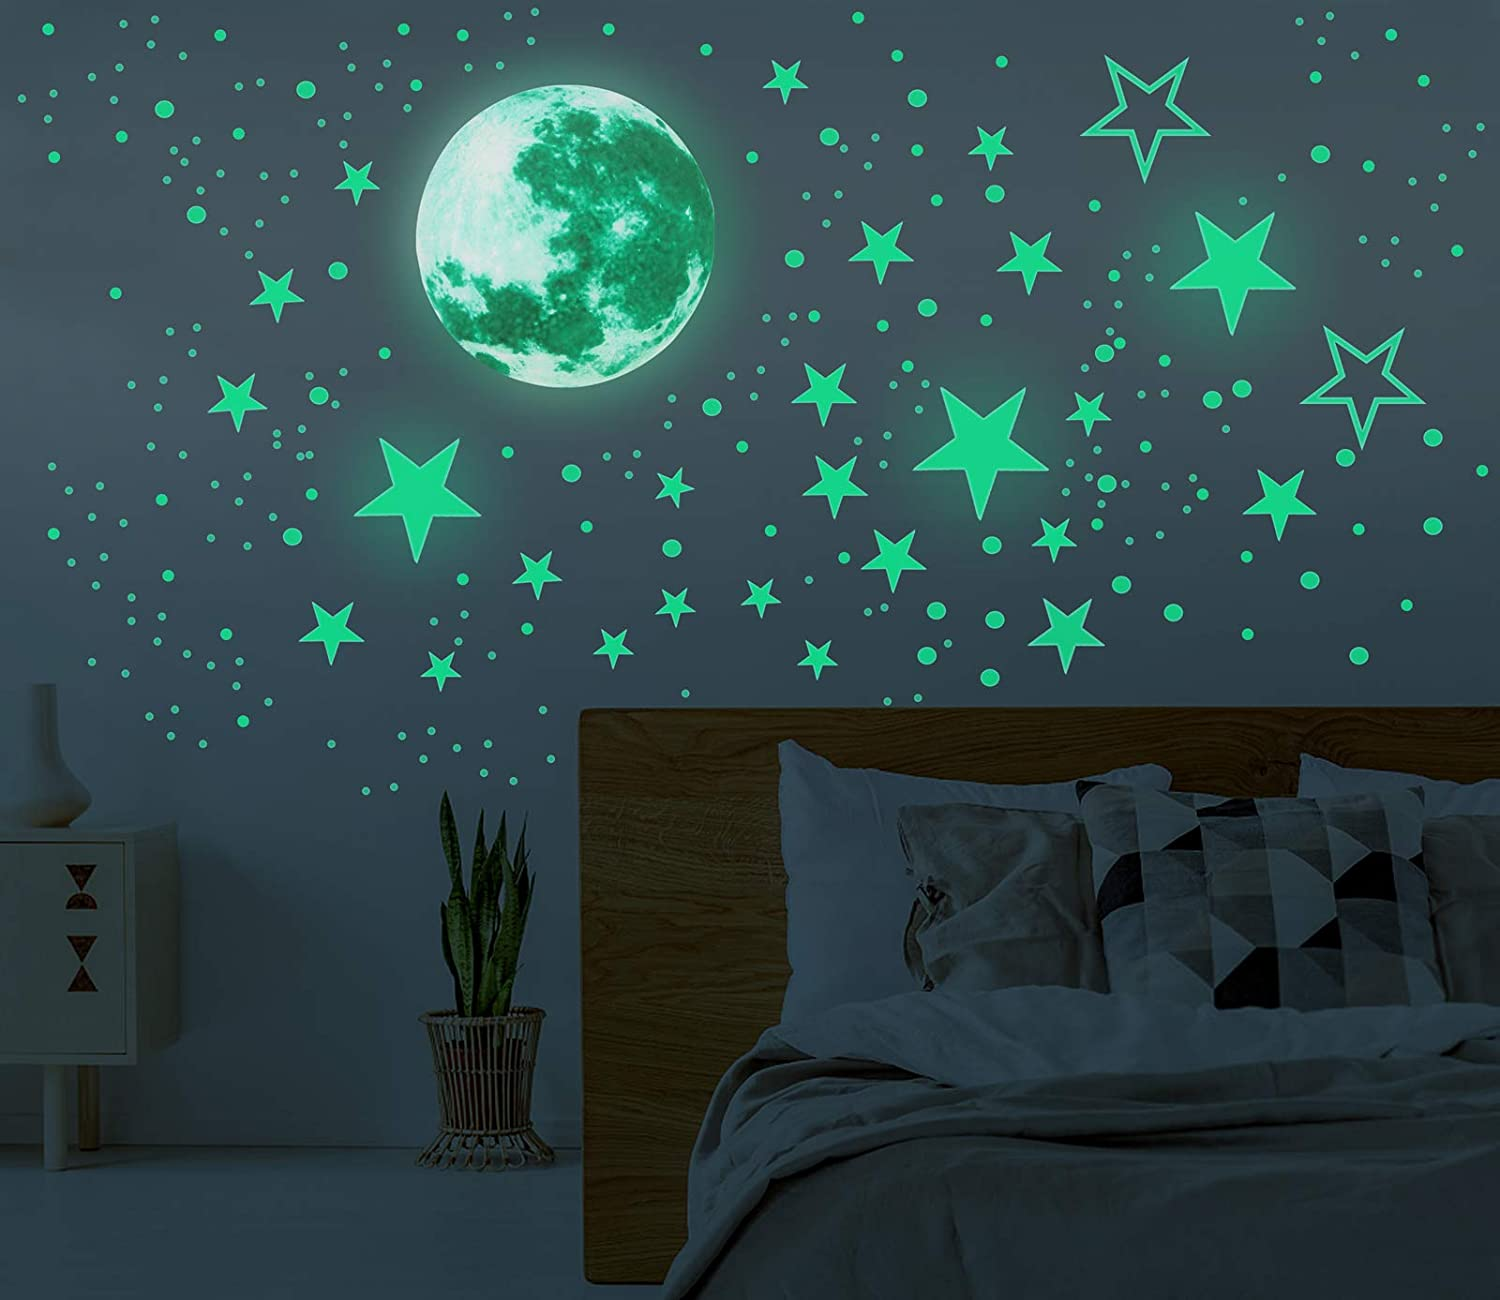 Glow in The Dark Moon and Stars Wall Stickers, 437PCS Adhesive Room Decor, Ceiling Art Stickers for Starry Sky at Night, Removable Wall Stickers, Great for Kids' Bedroom